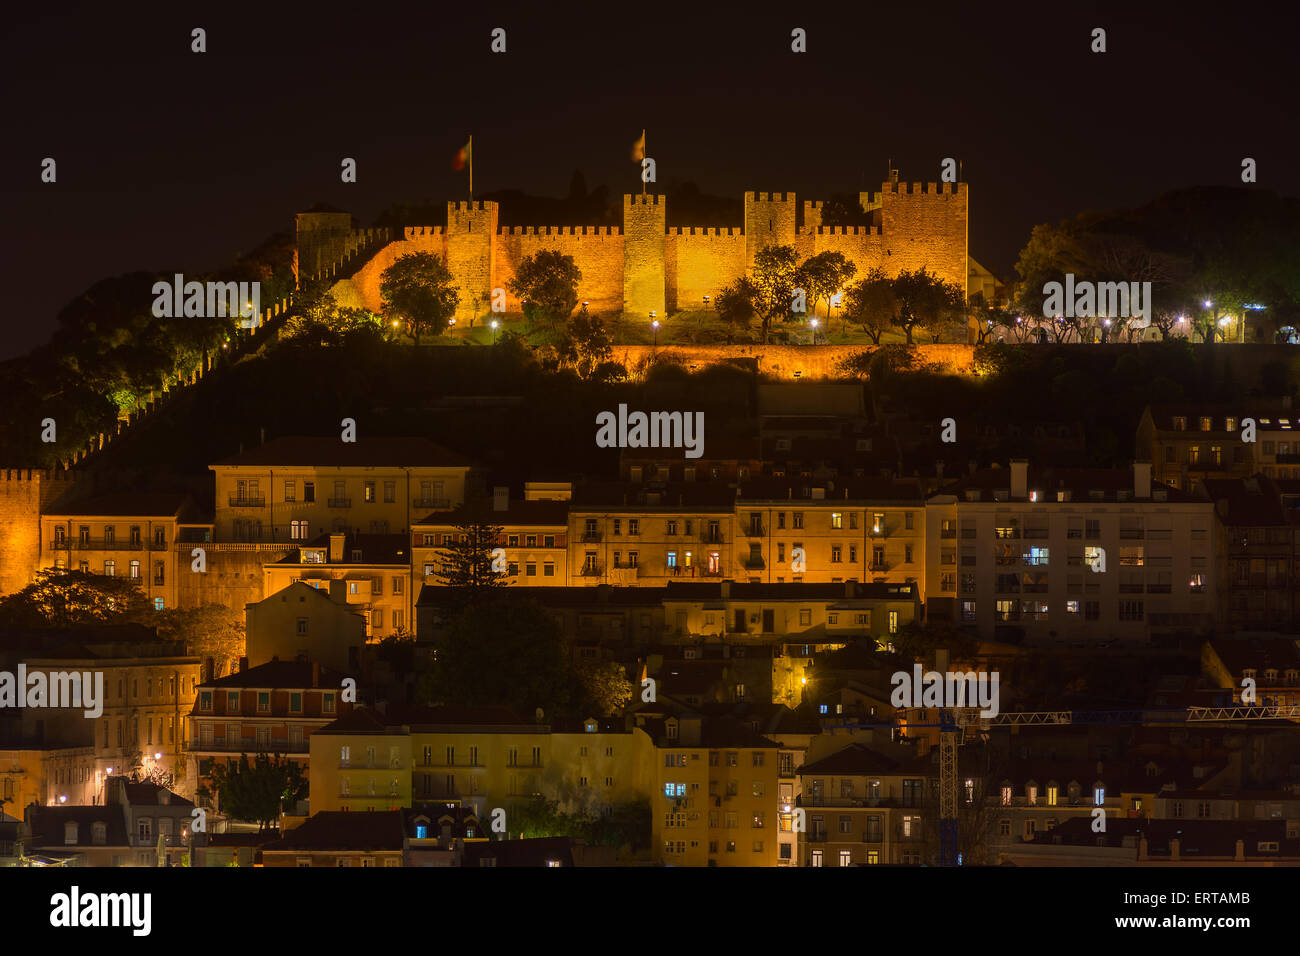 Saint George Castle in Lisbon  Portugal at night - Stock Image